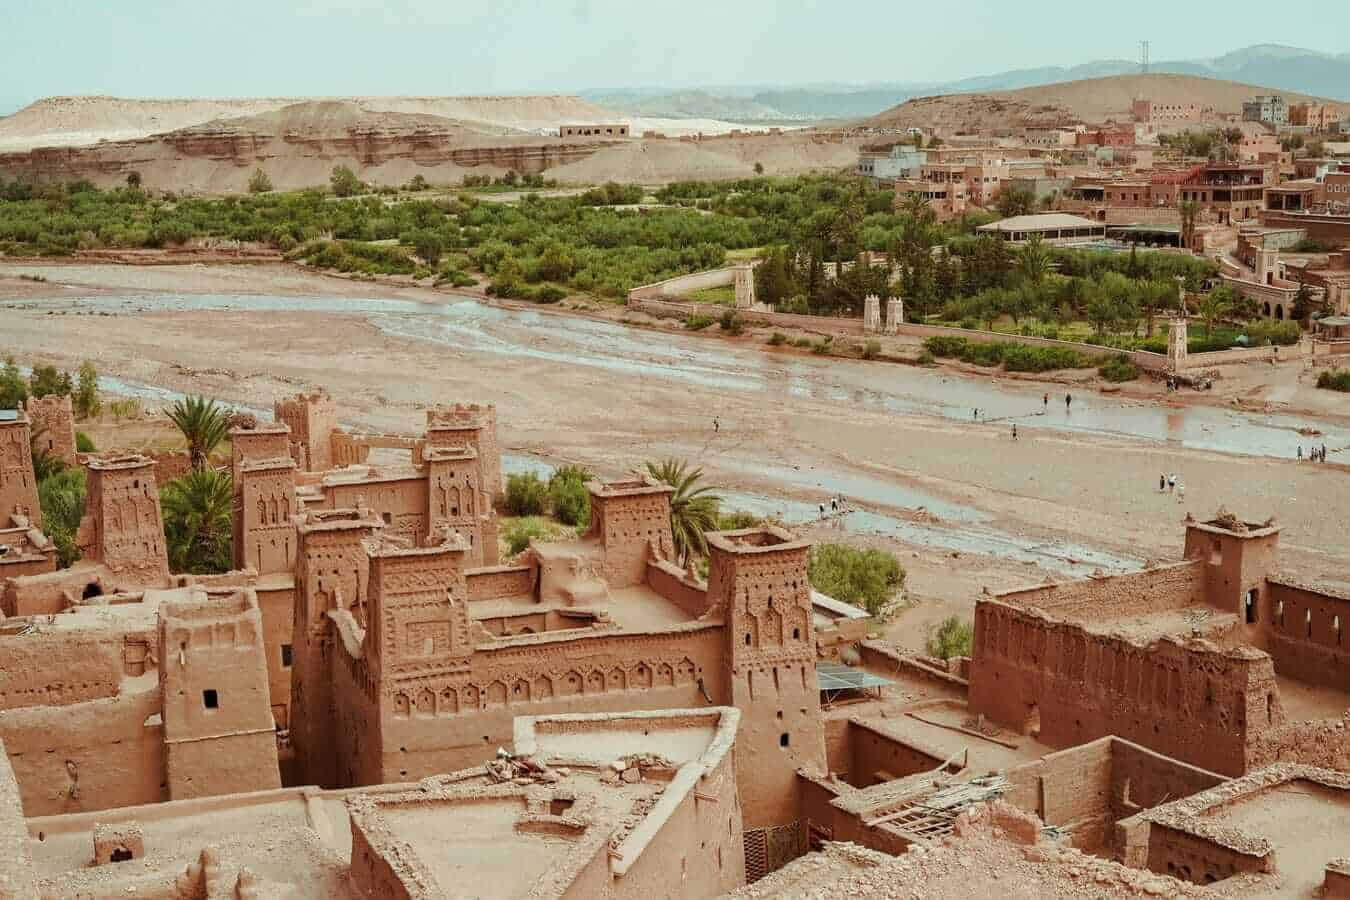 Game of Thrones Locations - Ait Benhaddou, Morocco